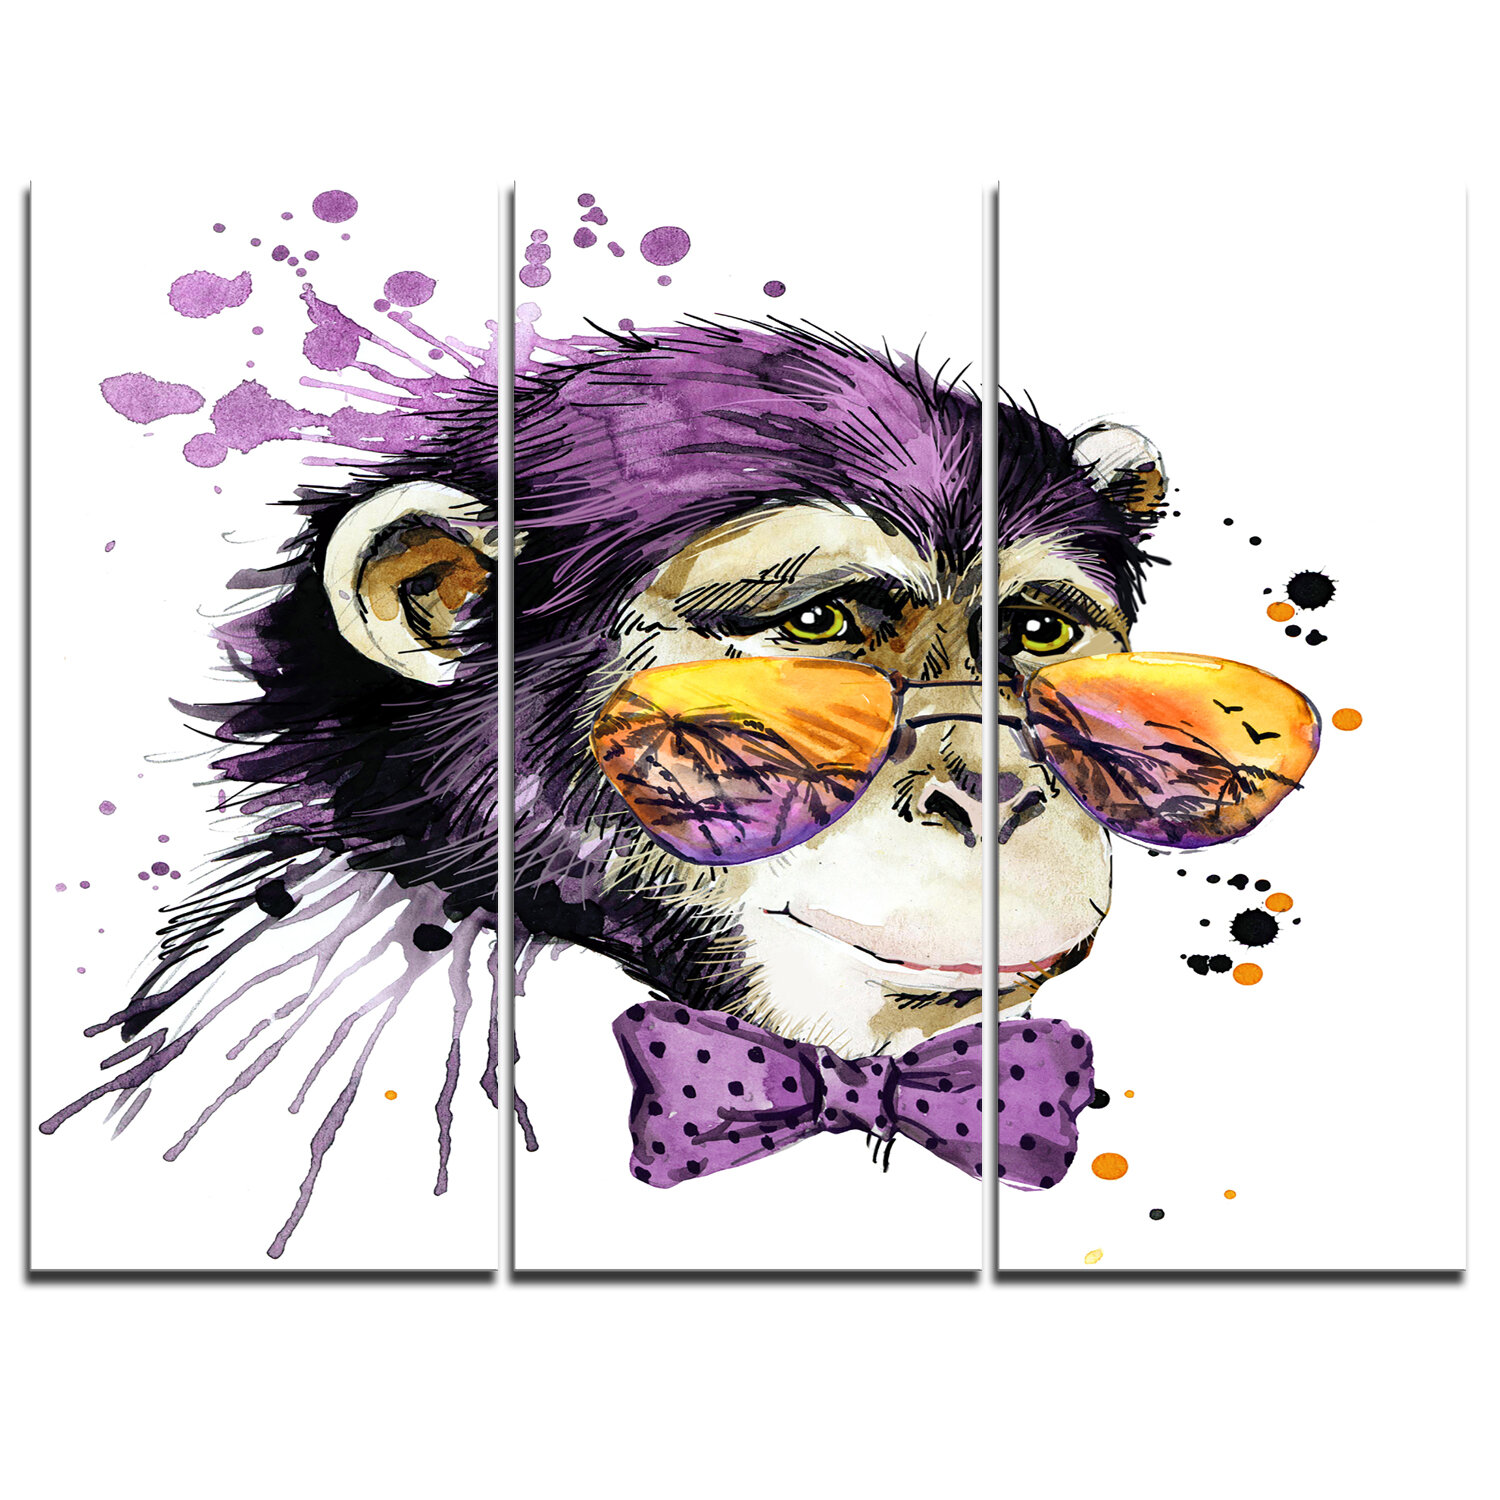 Cool Monkey 3 Piece Graphic Art On Wrapped Canvas Set